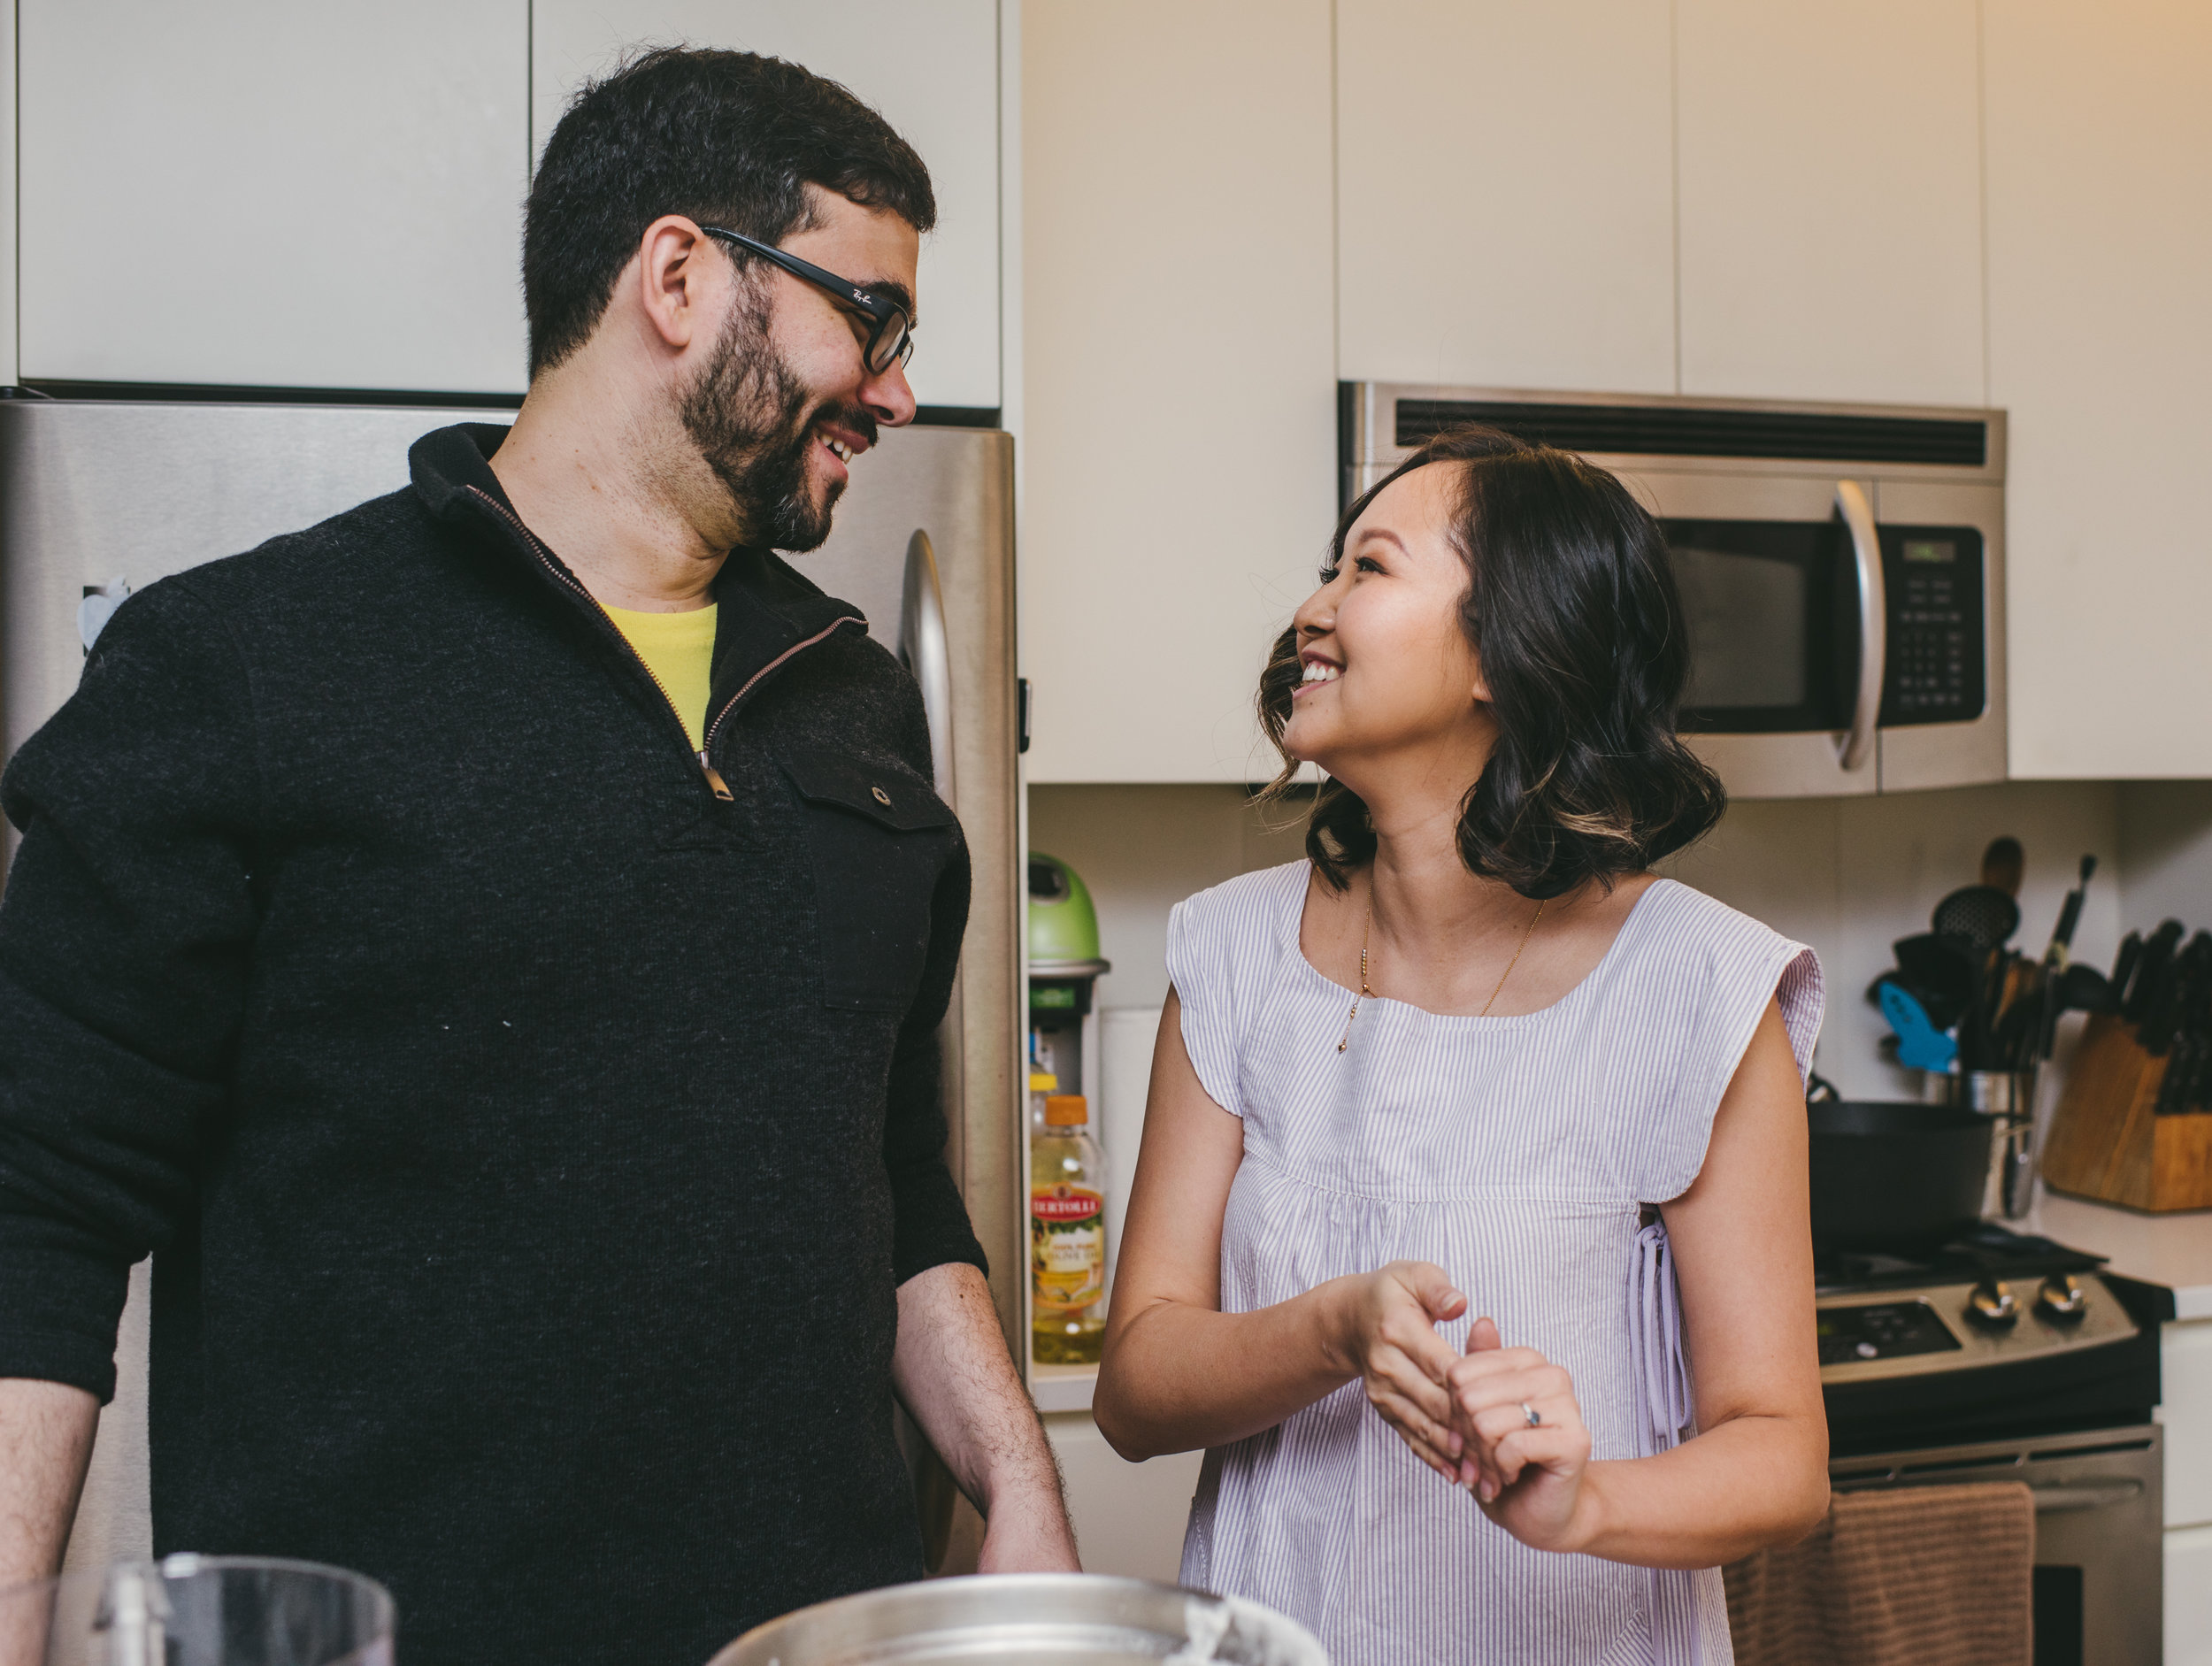 LILY & ANDREW - ENGAGED - TWOTWENTY by CHI-CHI AGBIM-15.jpg